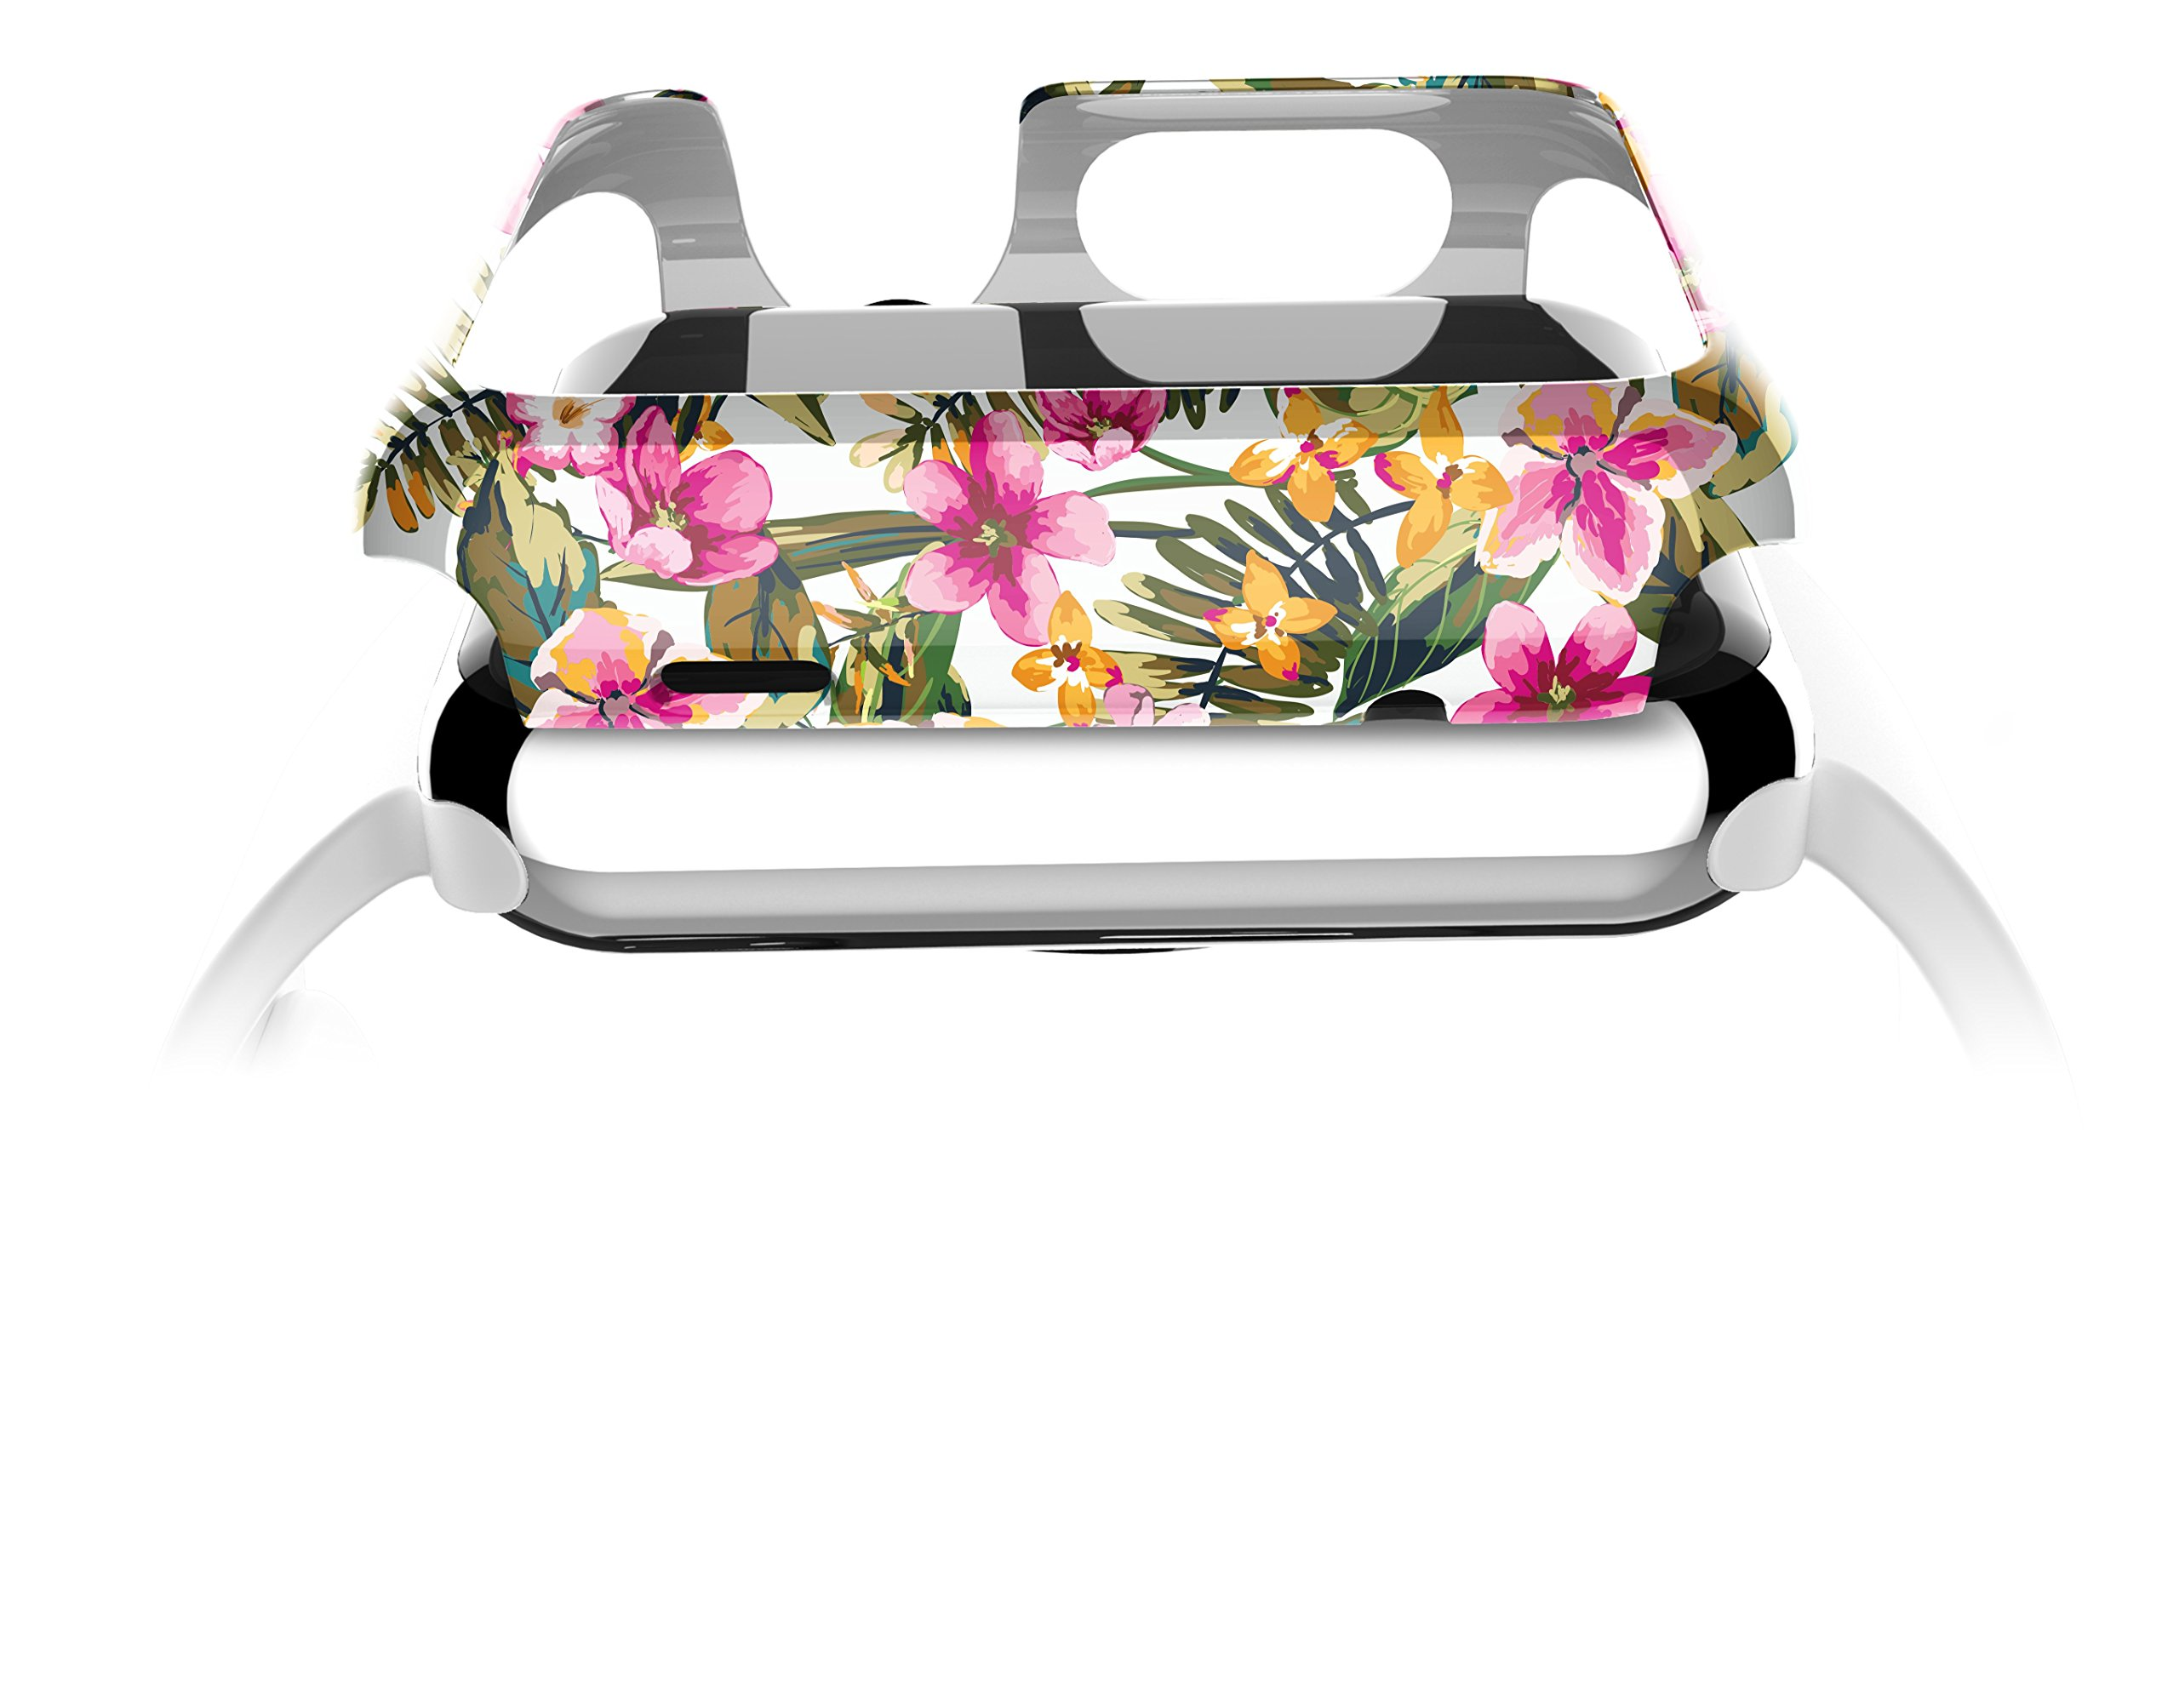 X-Doria 38mm Apple Watch Case (Revel Bumper) Fashion Case (Floral Palm) - Compatible with Apple Watch Series 1, Series 2, Series 3 and Nike+ by X-Doria (Image #2)